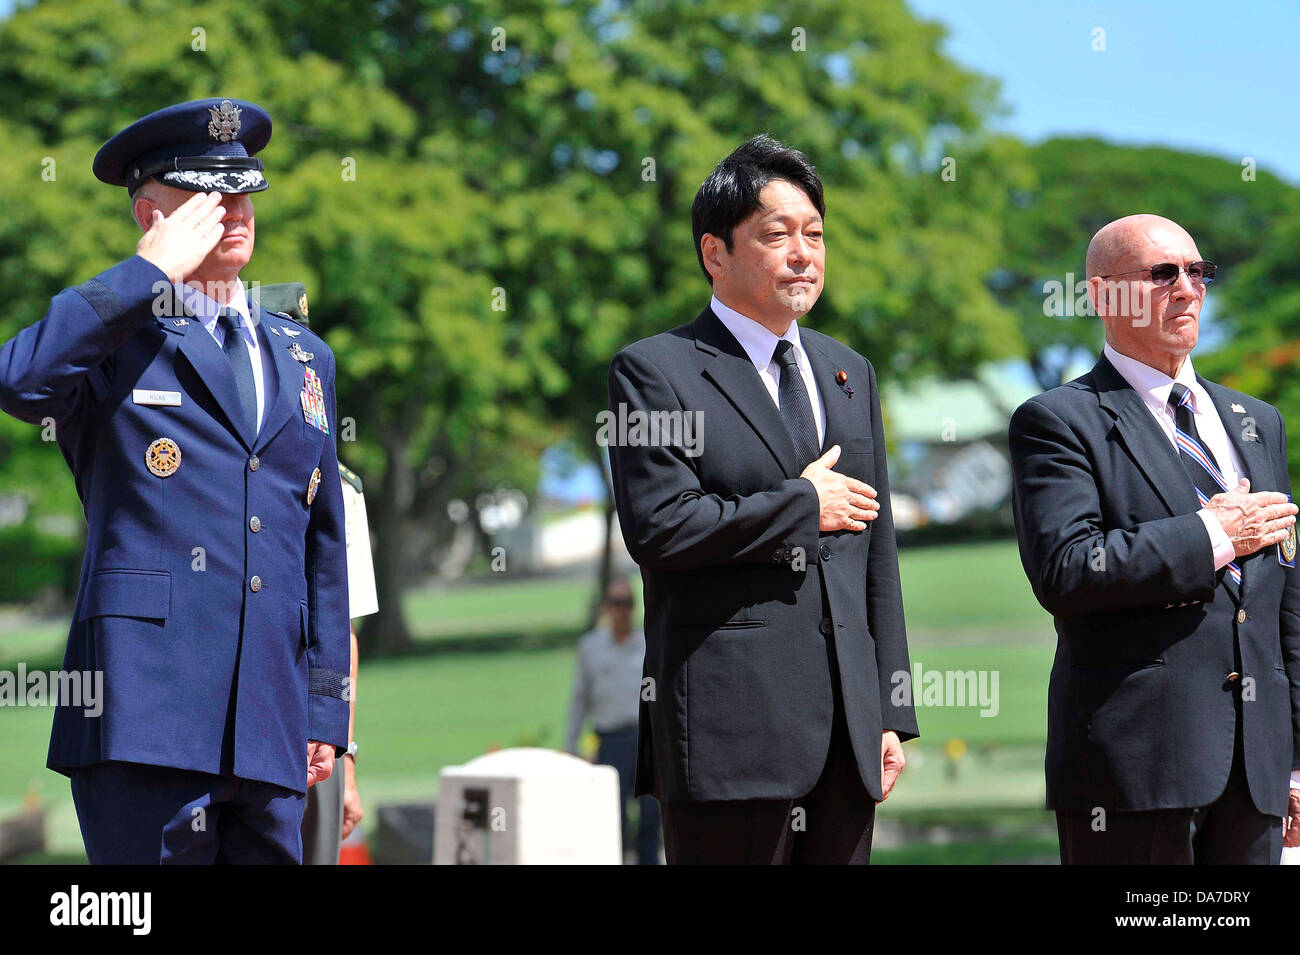 Japanese Minister of Defense Itsunori Onodera, center, Gene Castagnetti, and Brig. Gen. John Hicks stand during - Stock Image